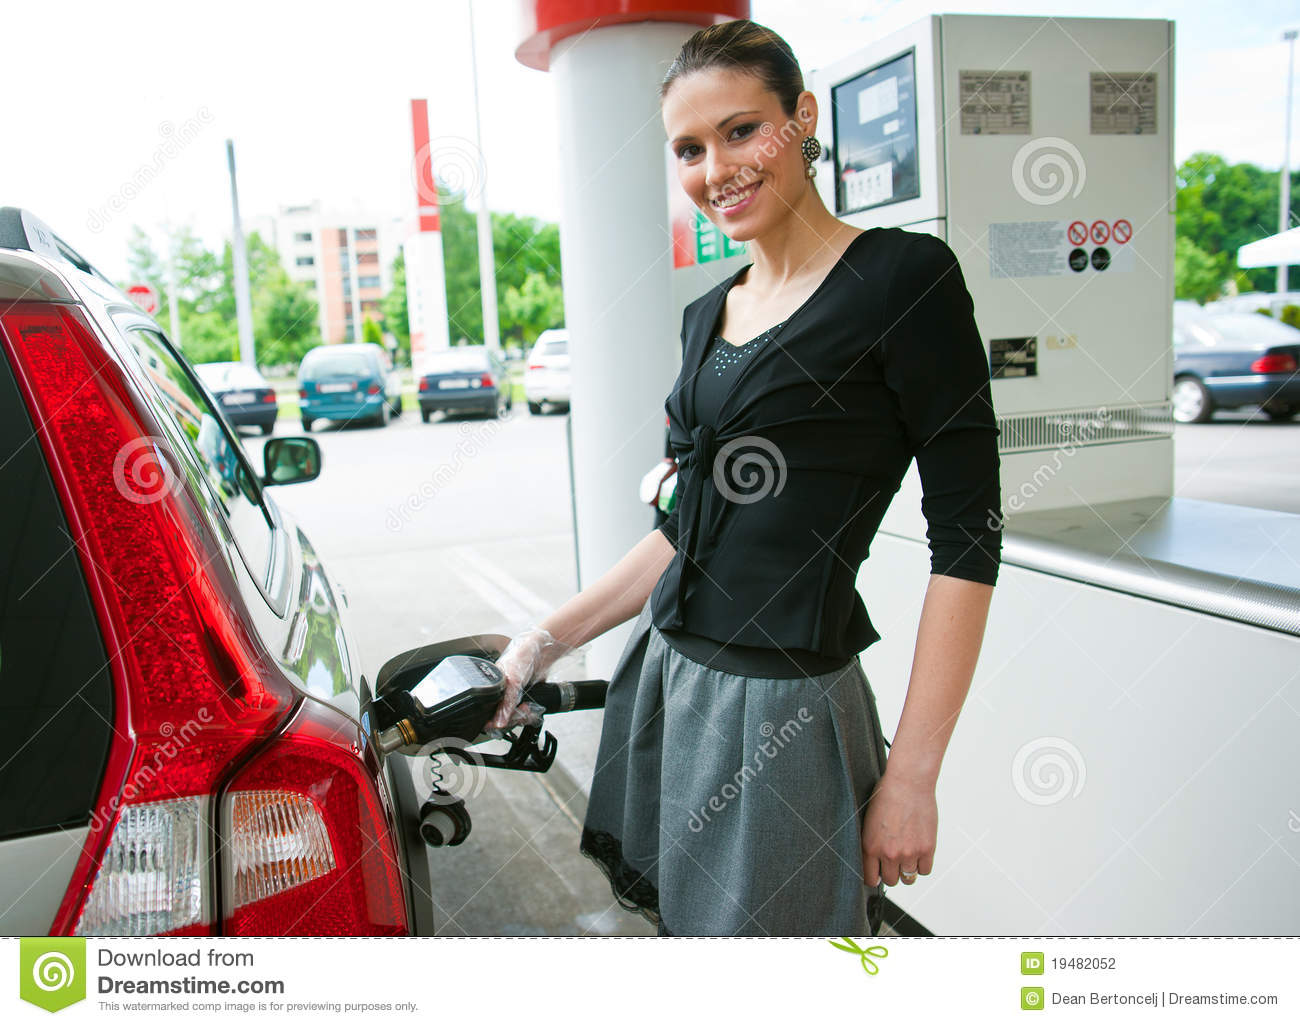 Dating. girl who works at gas station